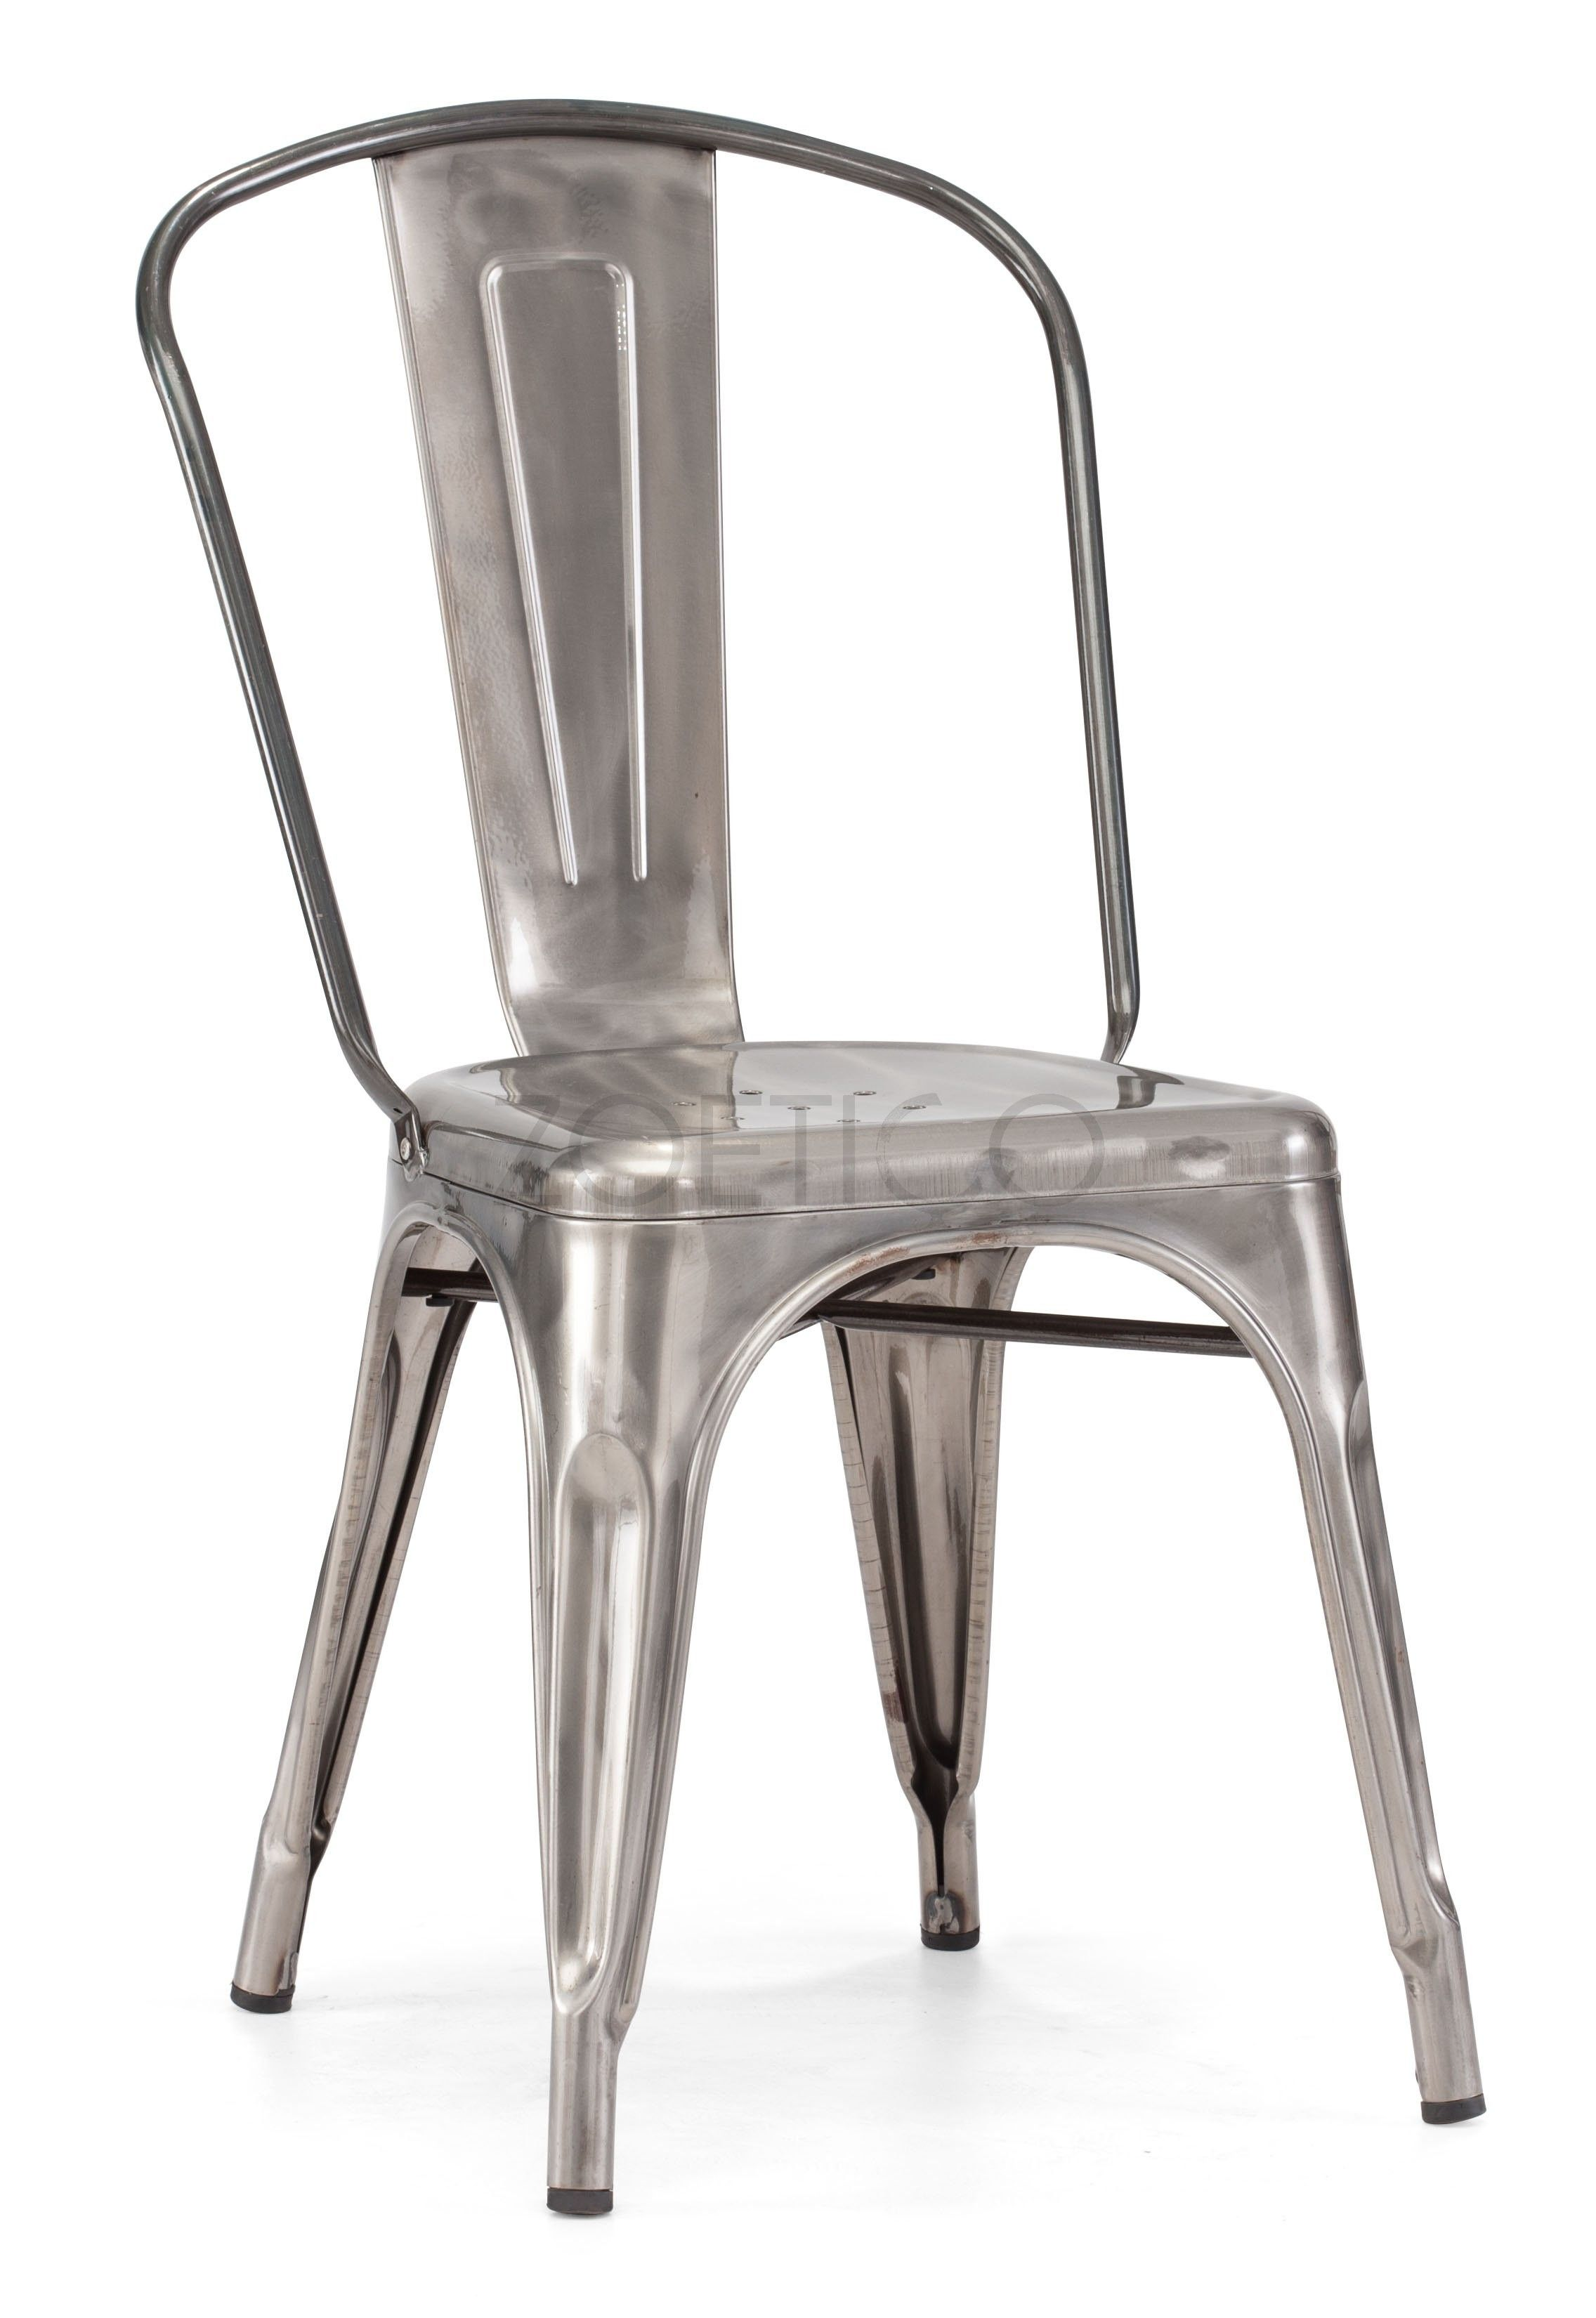 xavier pauchard french industrial dining room furniture. Paurchard Style Marais Side Chair - Gun Metal $116 Metalworker Xavier Pauchard Not Only Brought The Art Of Galvanizing Steel To France But Also Took French Industrial Dining Room Furniture